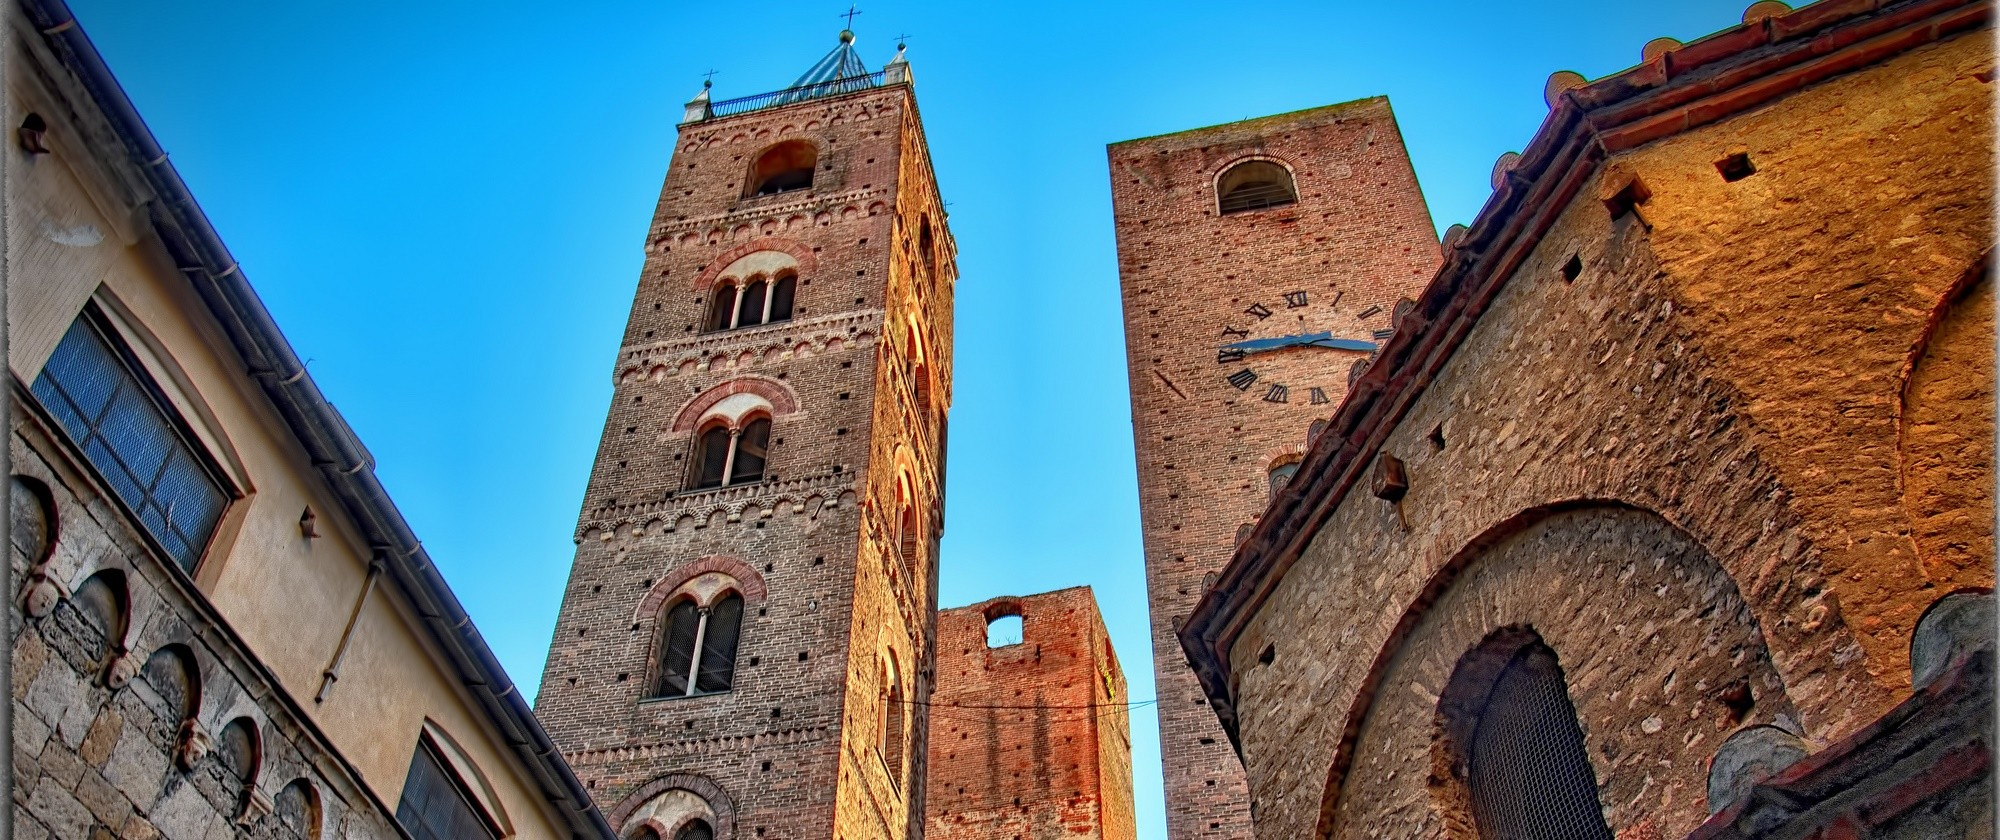 A visit to the medieval historical center of Albenga